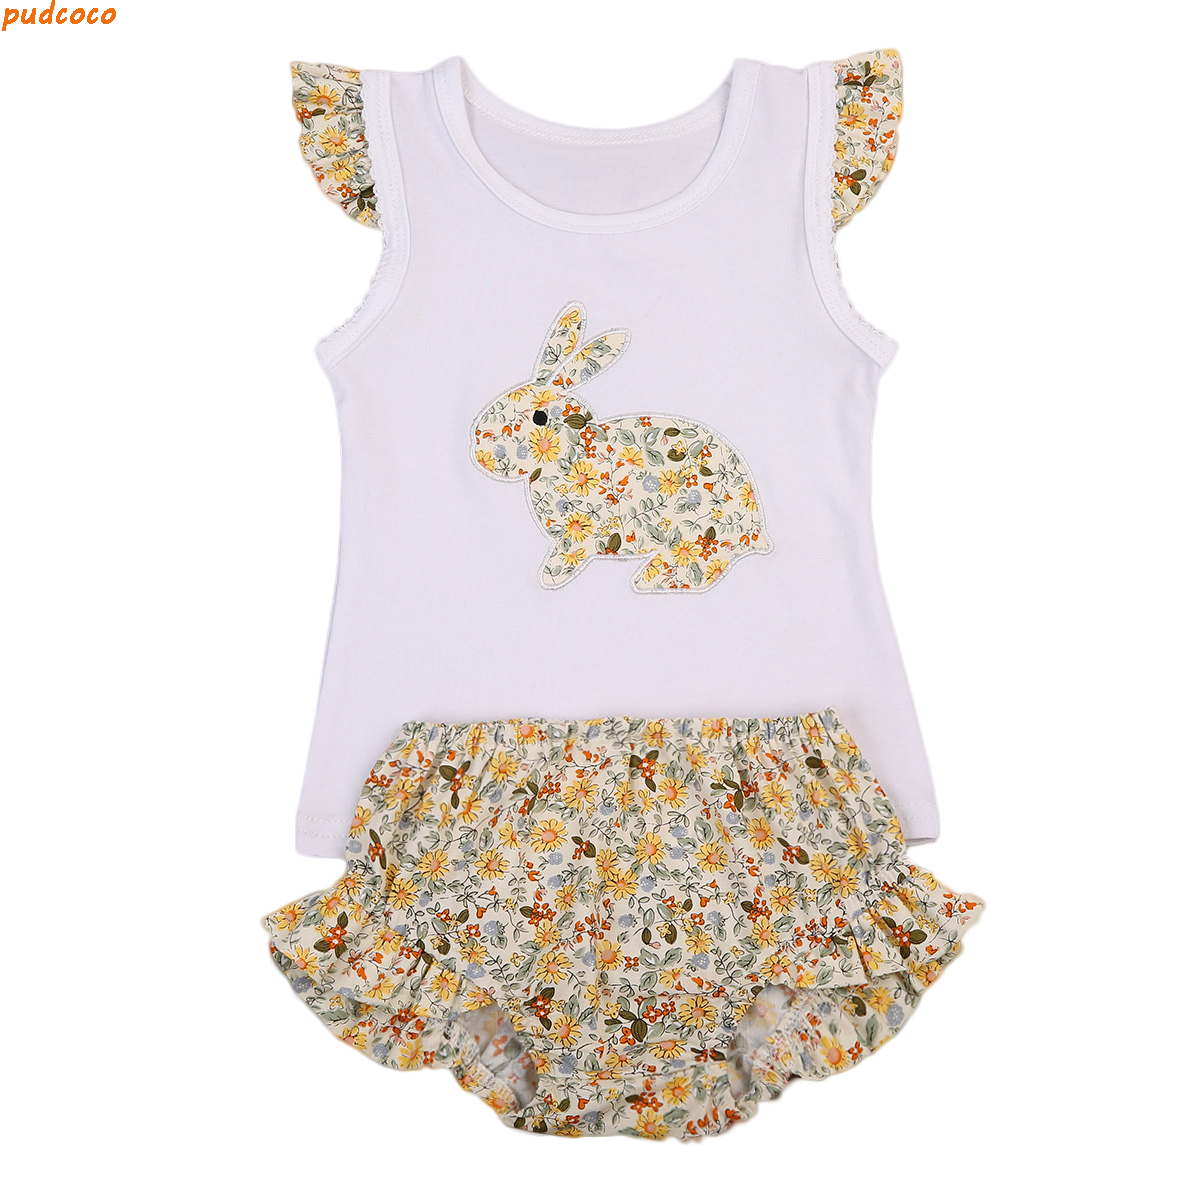 Pretty Toddler Baby Girl Bunny Outfits Clothes Casual Vest Tops Floral Shorts